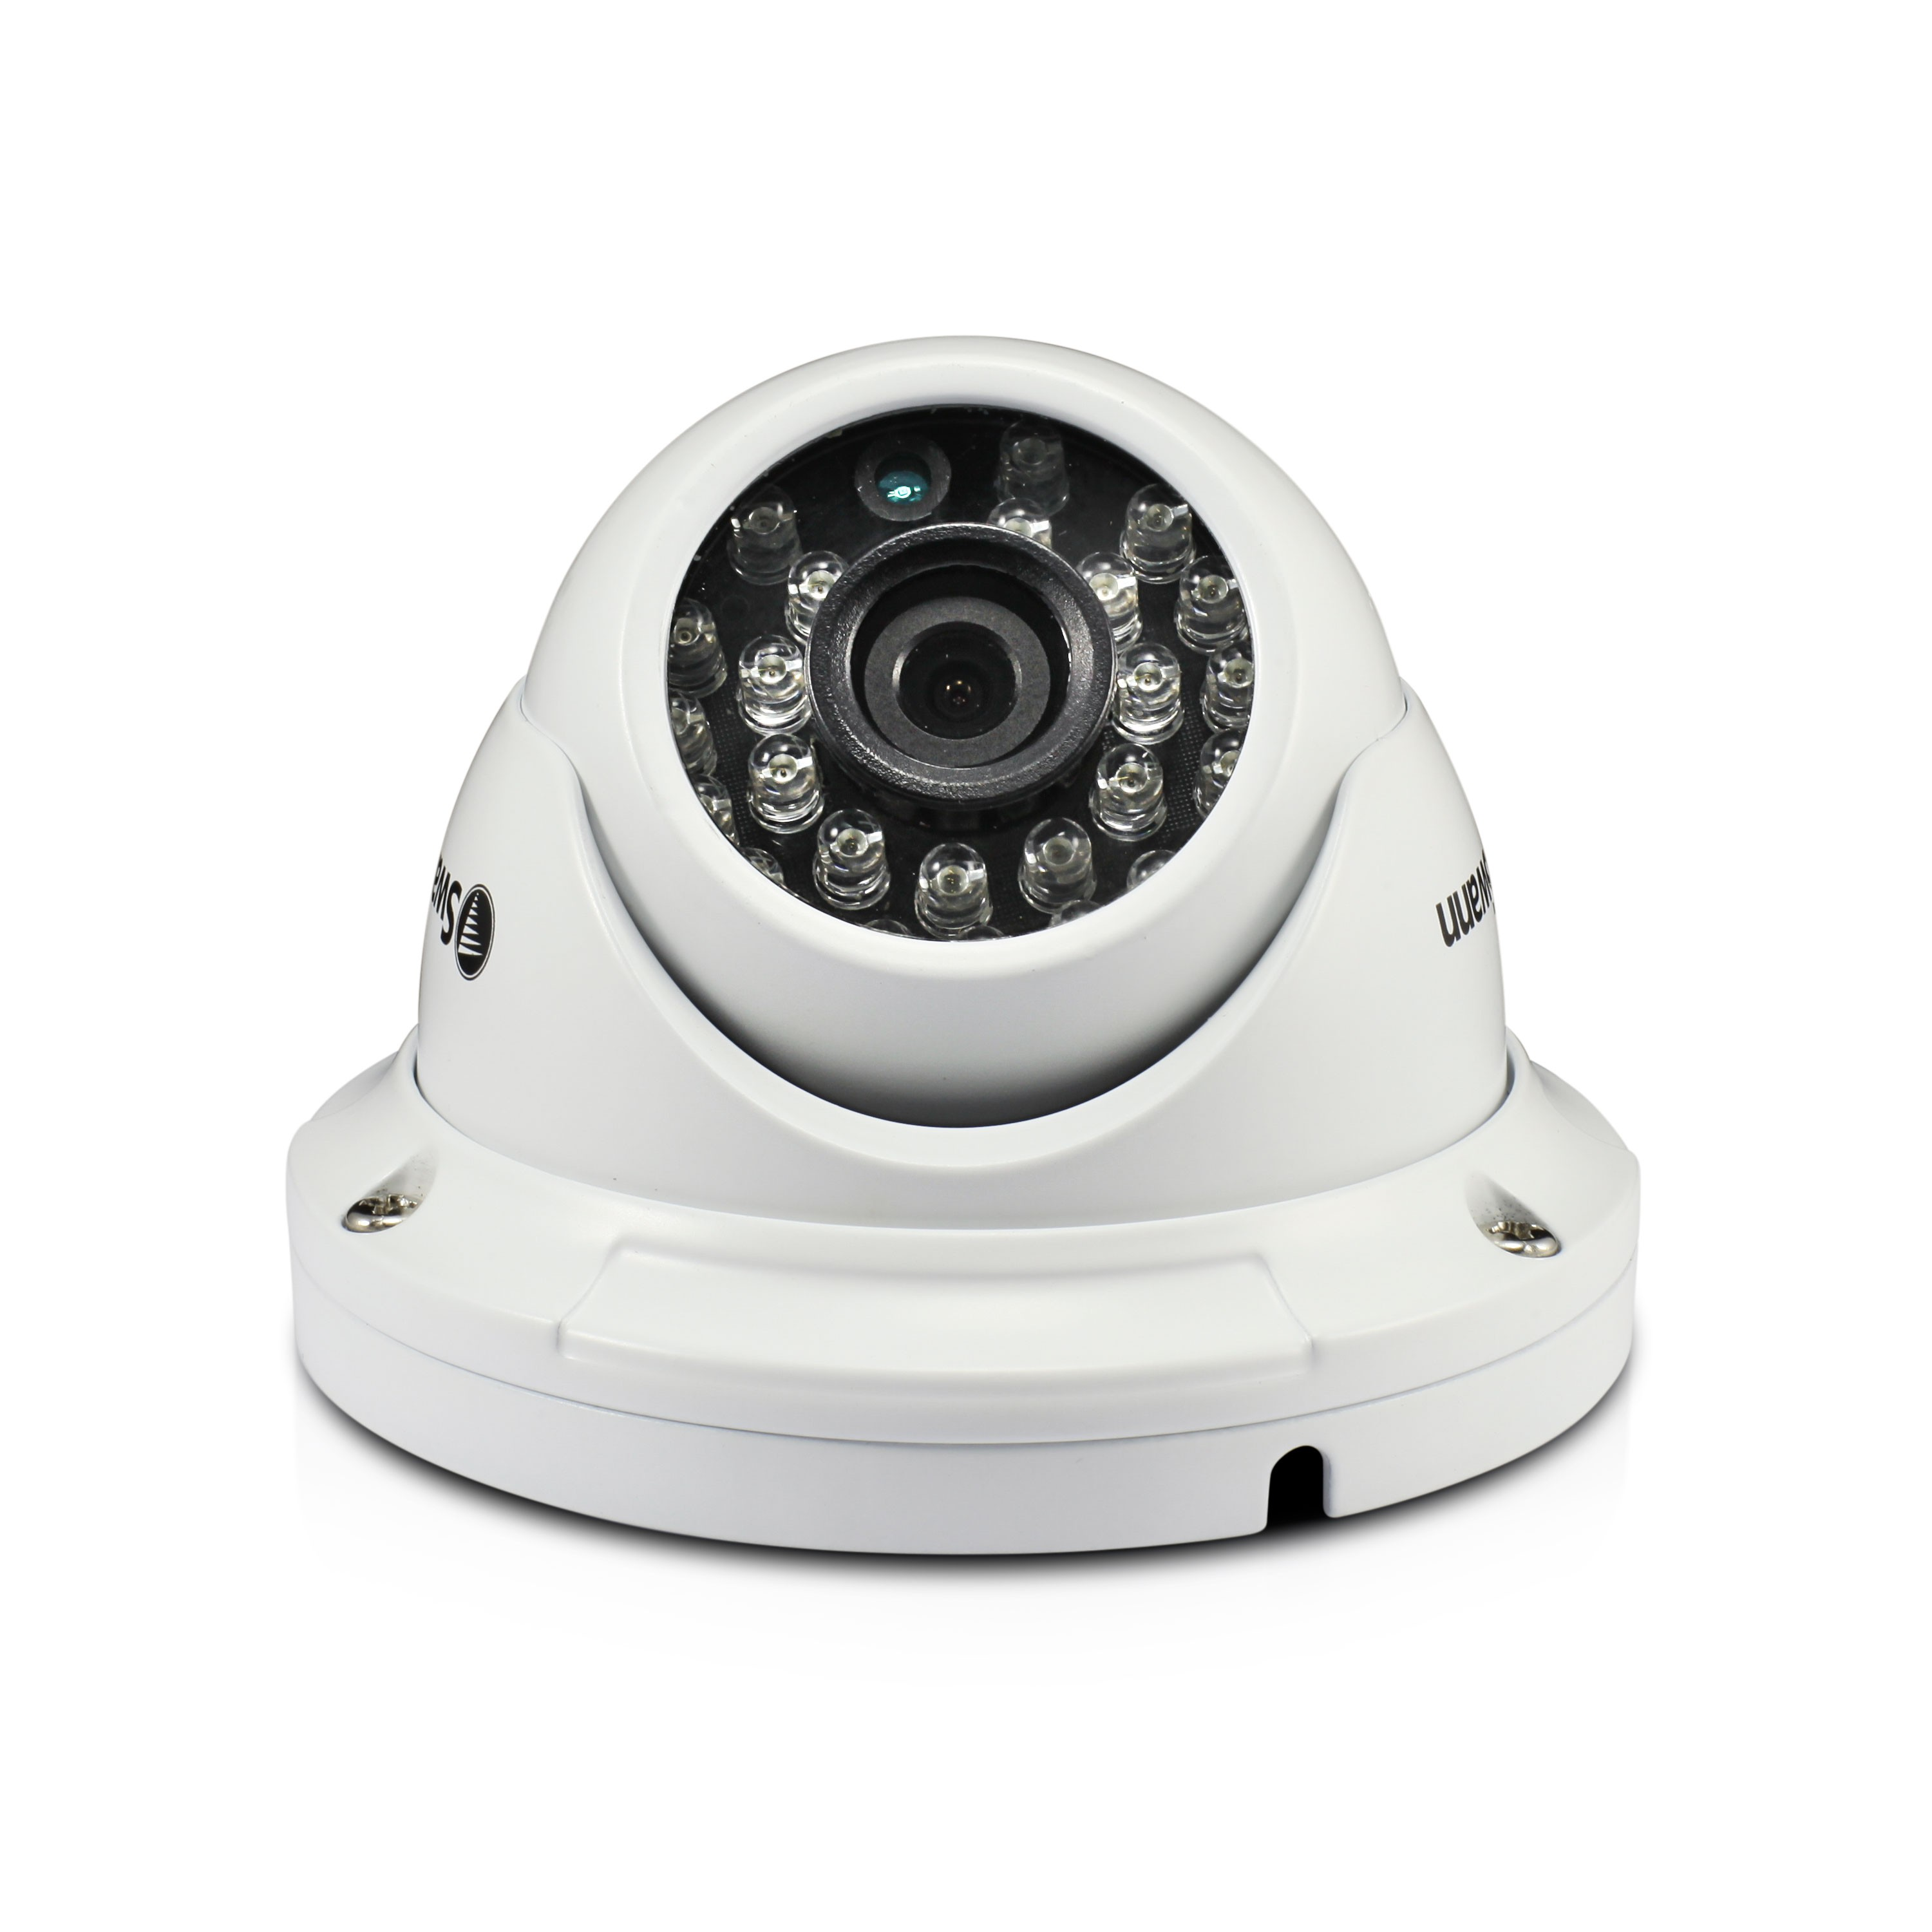 Swann Outdoor Security Camera 1080p Full Hd Dome With Ir